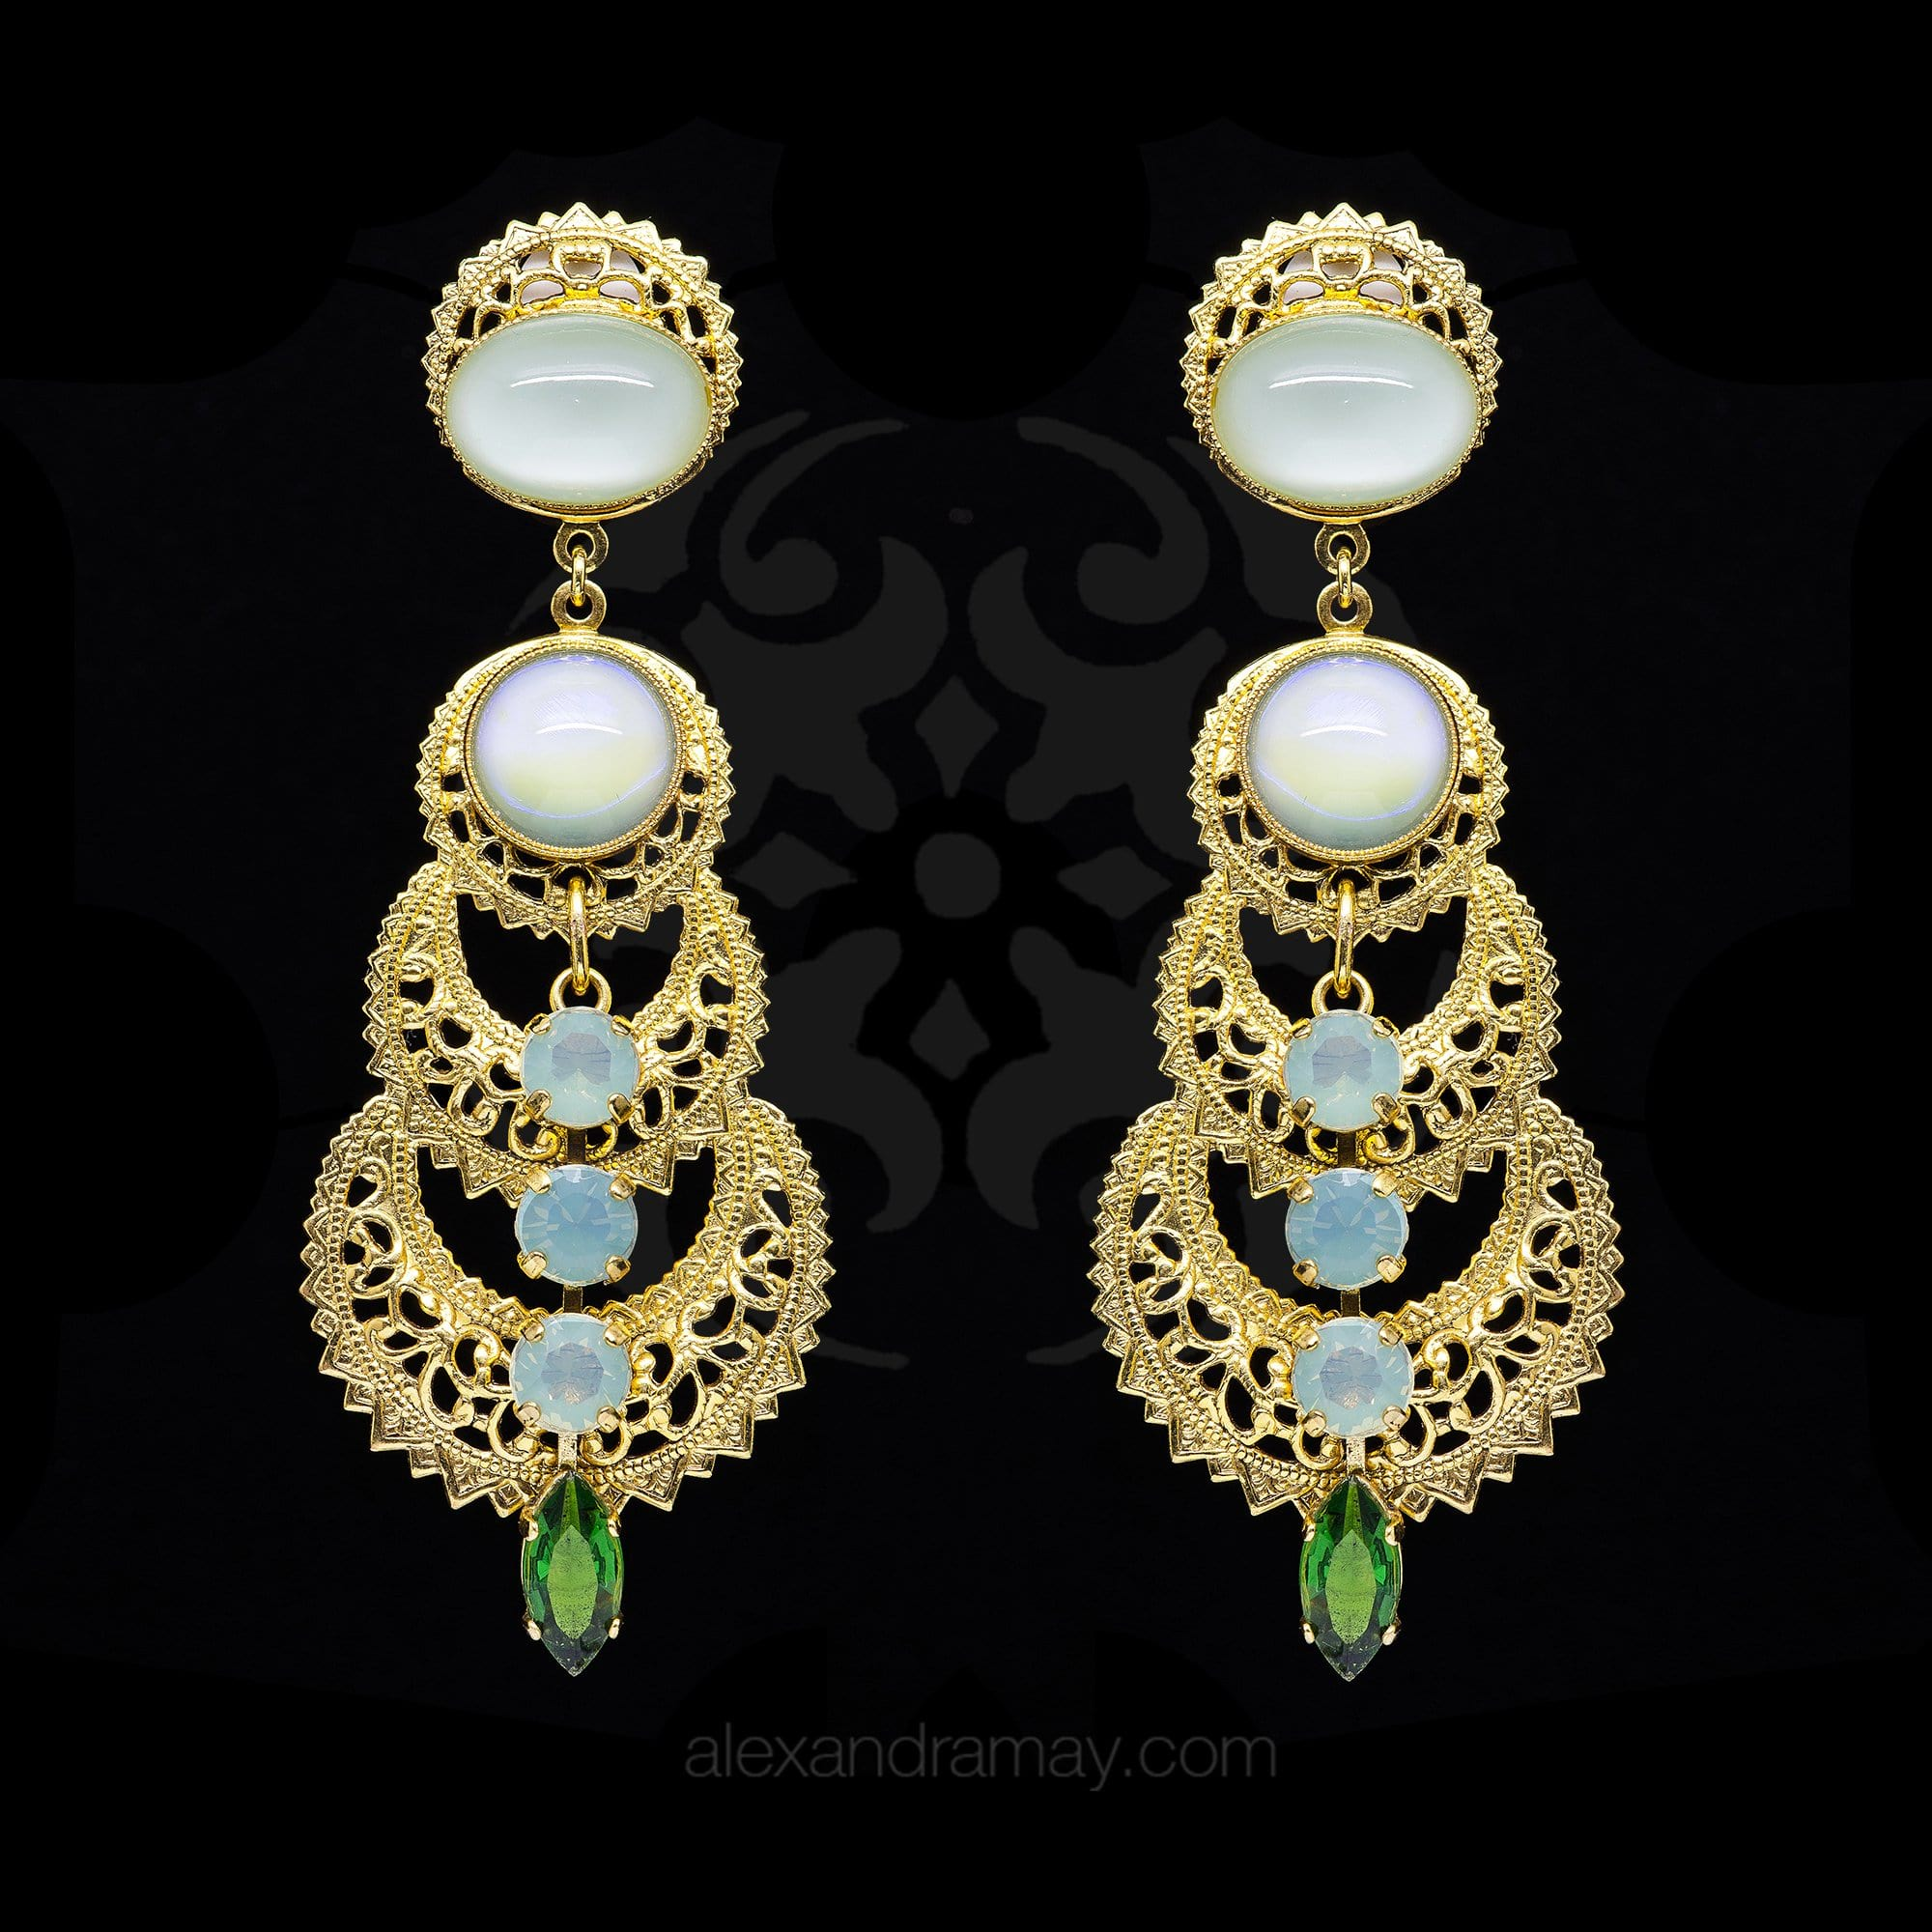 earring earrings indian gold designs wwwimgkidcom imgkidcom jewellery l